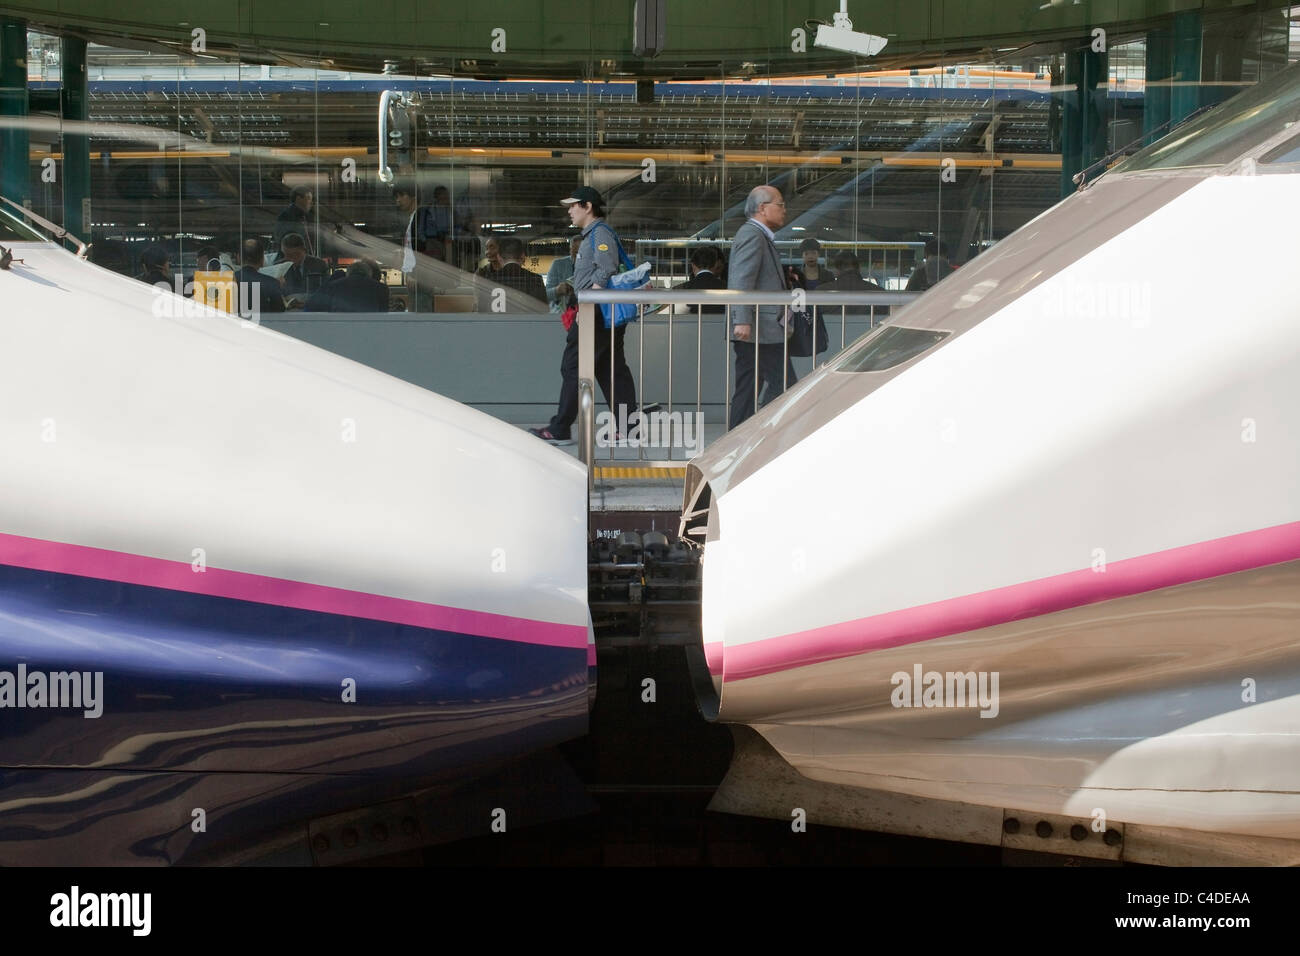 Bullet train cars coupled together and people on platform at Tokyo station. - Stock Image